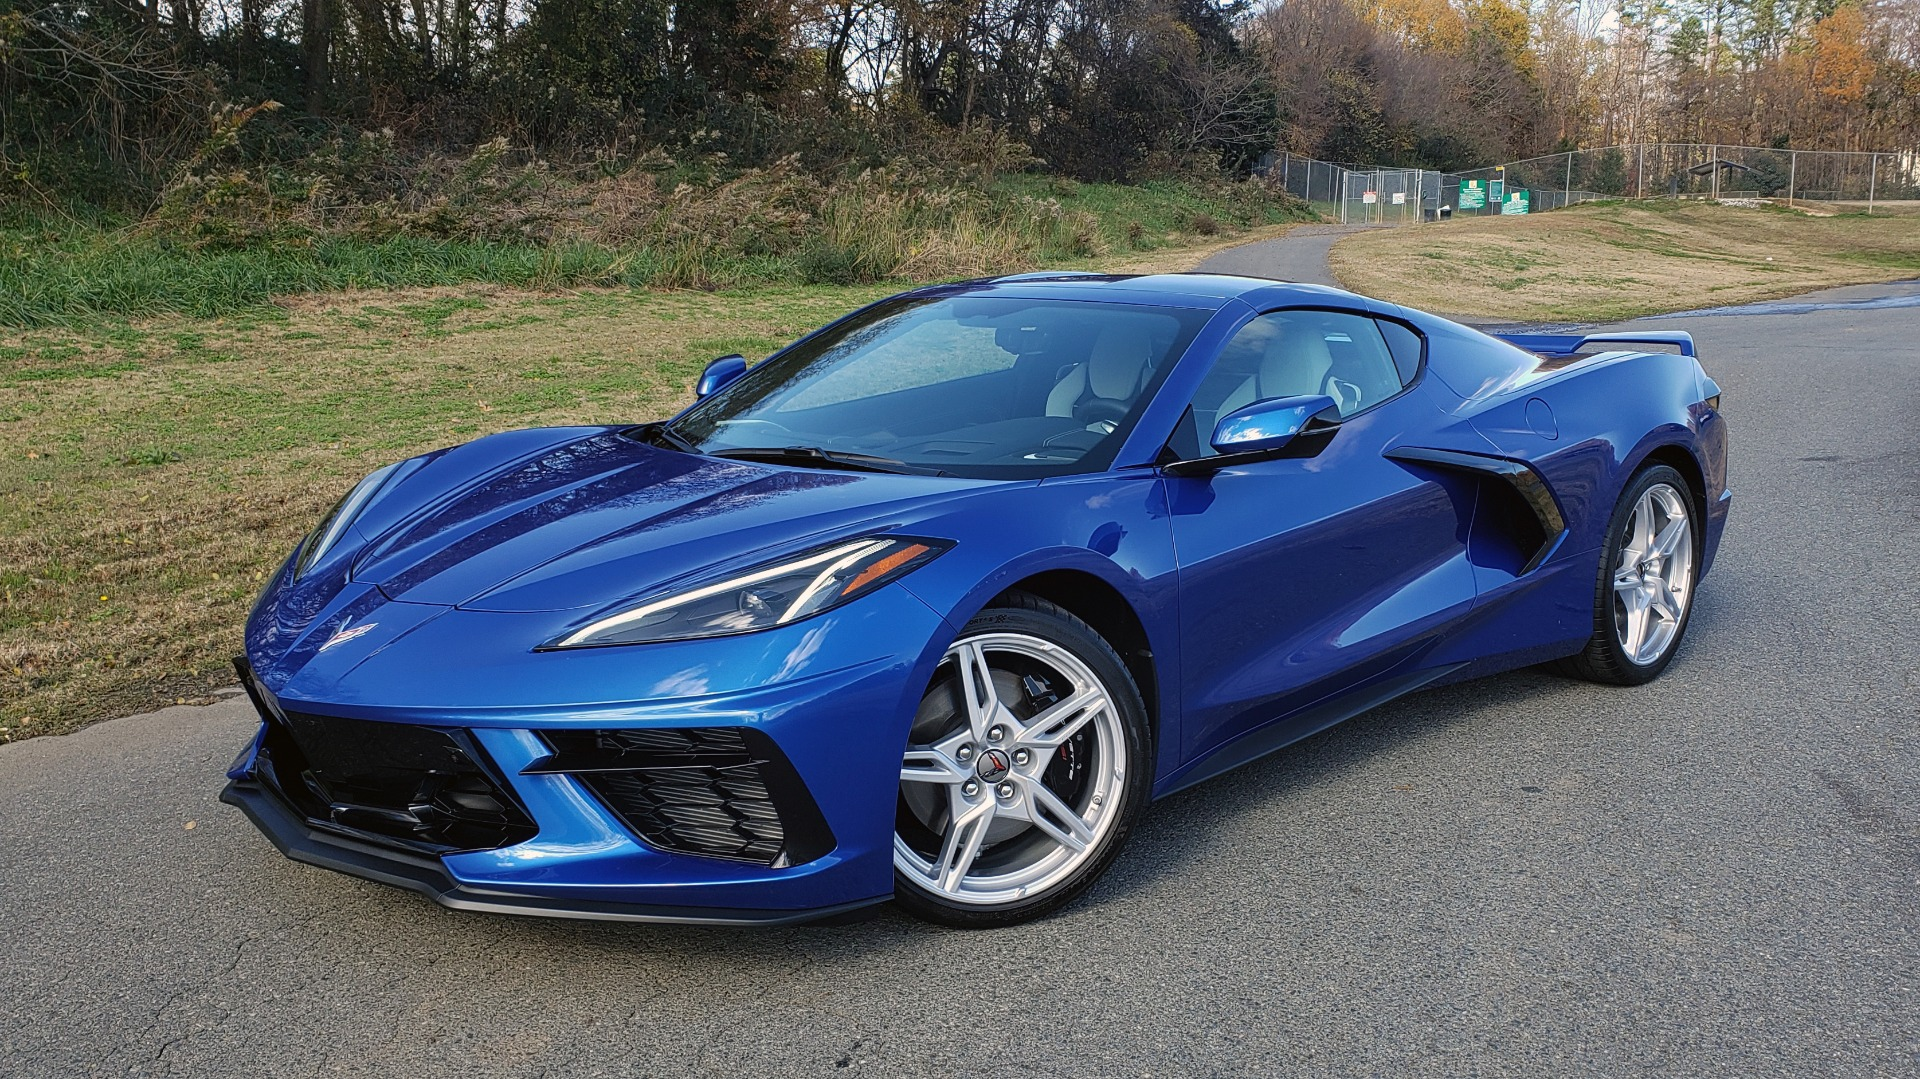 Used 2020 Chevrolet C8 CORVETTE STINGRAY 2LT COUPE / NAV / HUD / BOSE / GT2 SEATS / FRONT LIFT / REARVIEW for sale $98,999 at Formula Imports in Charlotte NC 28227 1